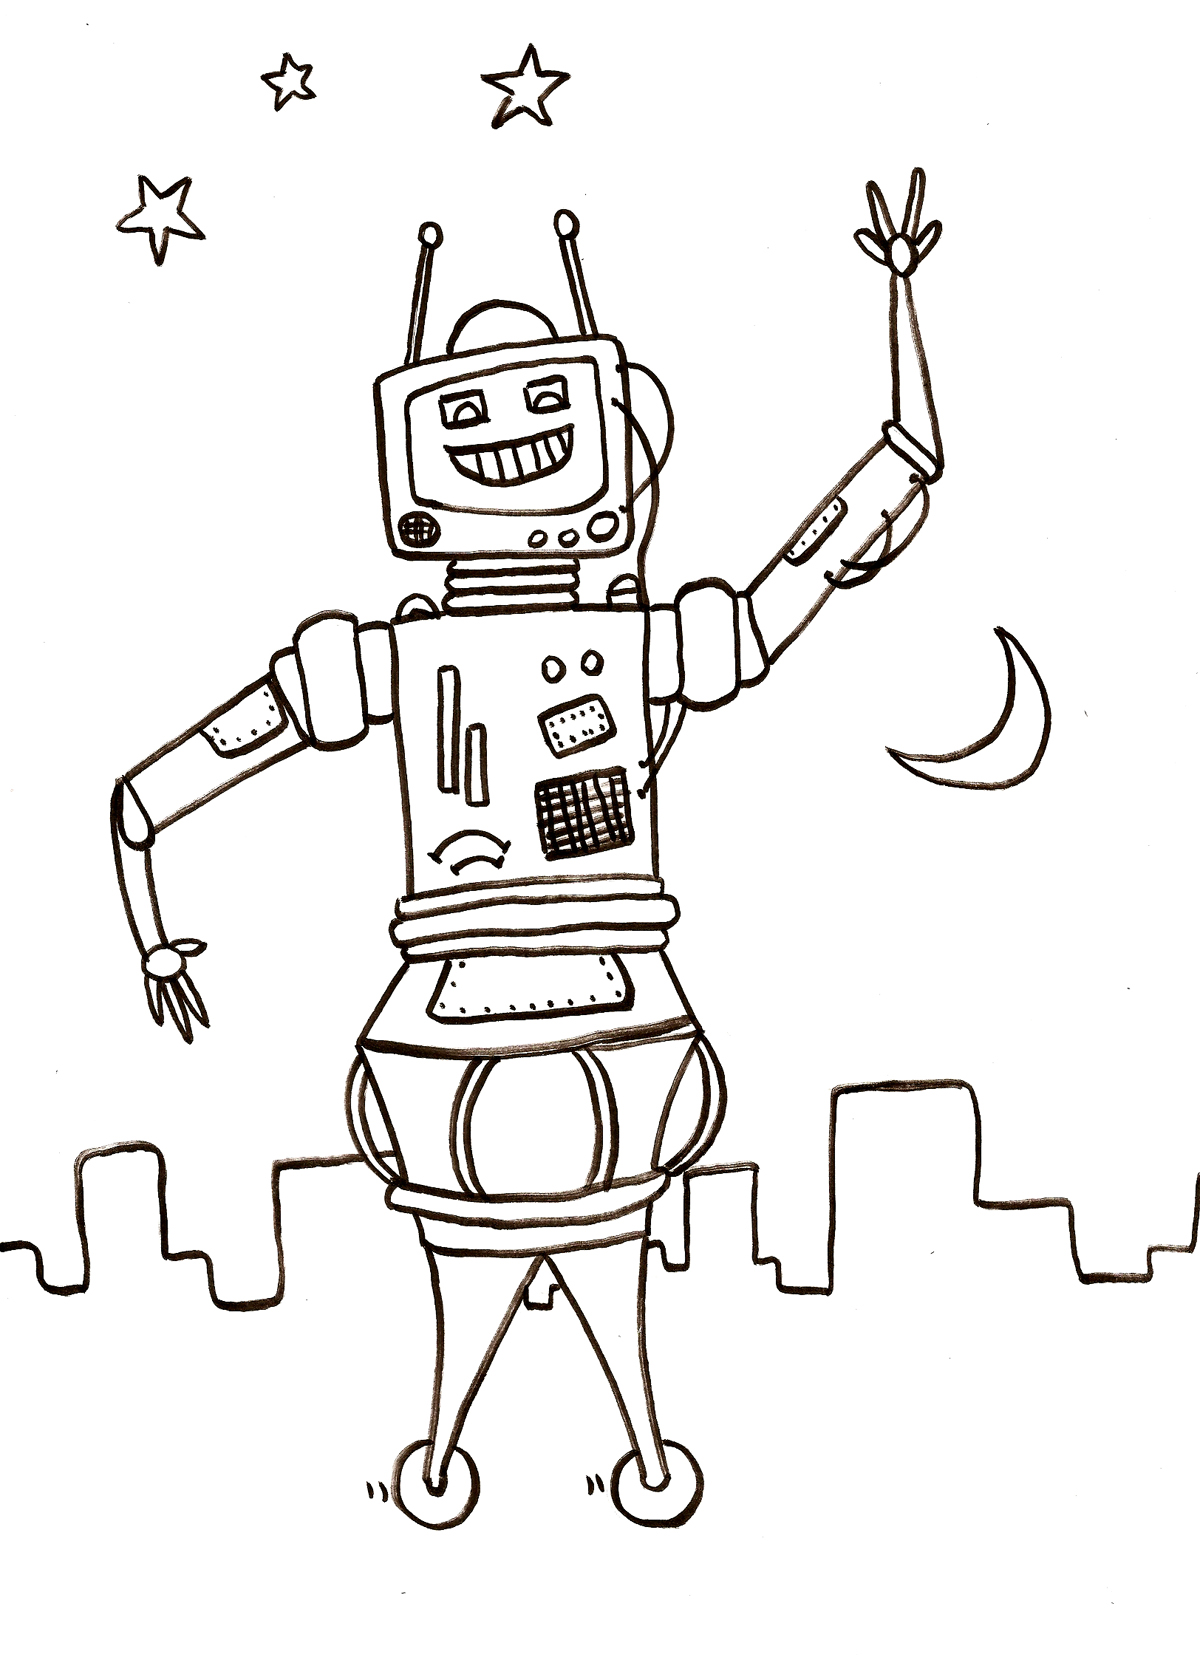 Robots free to color for kids - Robots Kids Coloring Pages